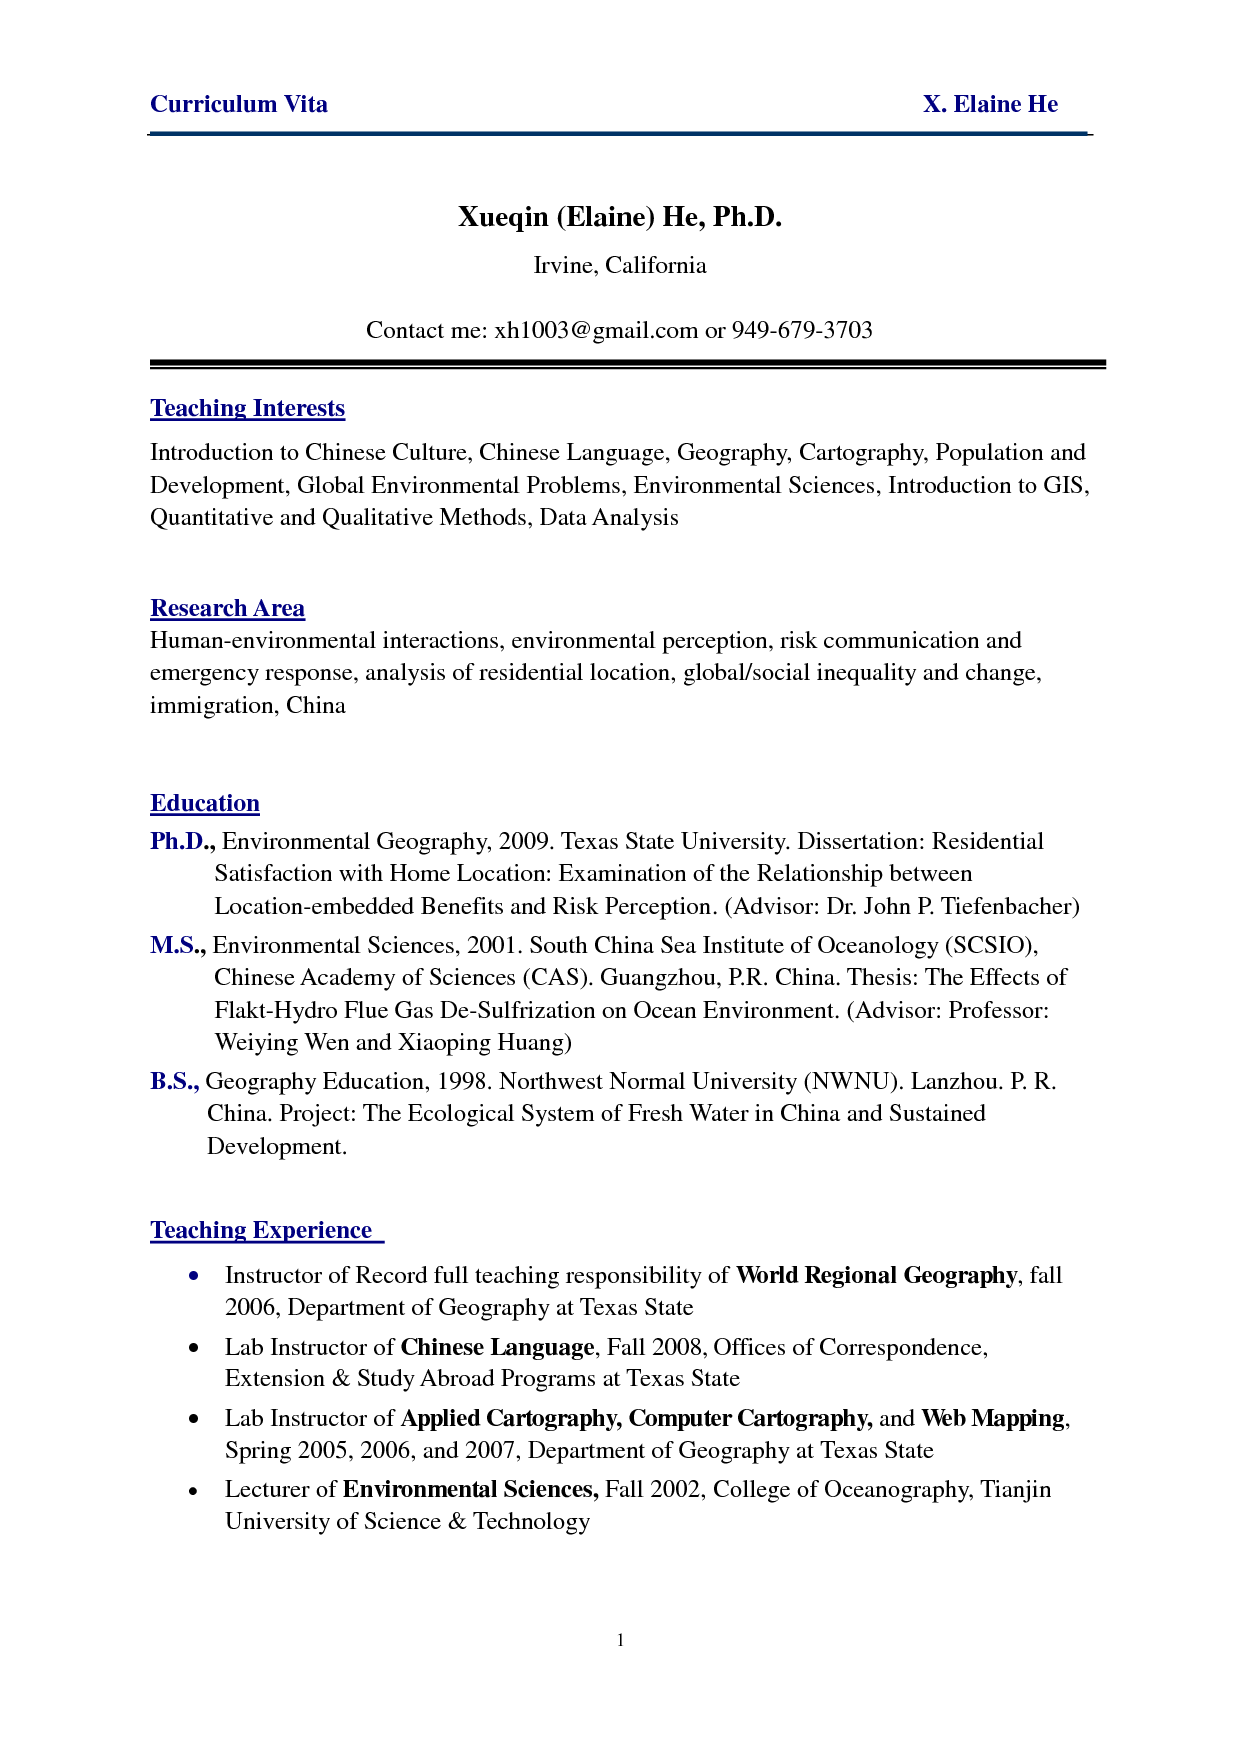 Resume New Lpn Graduate Resume new grad lpn resume sample nursing hacked pinterest sample